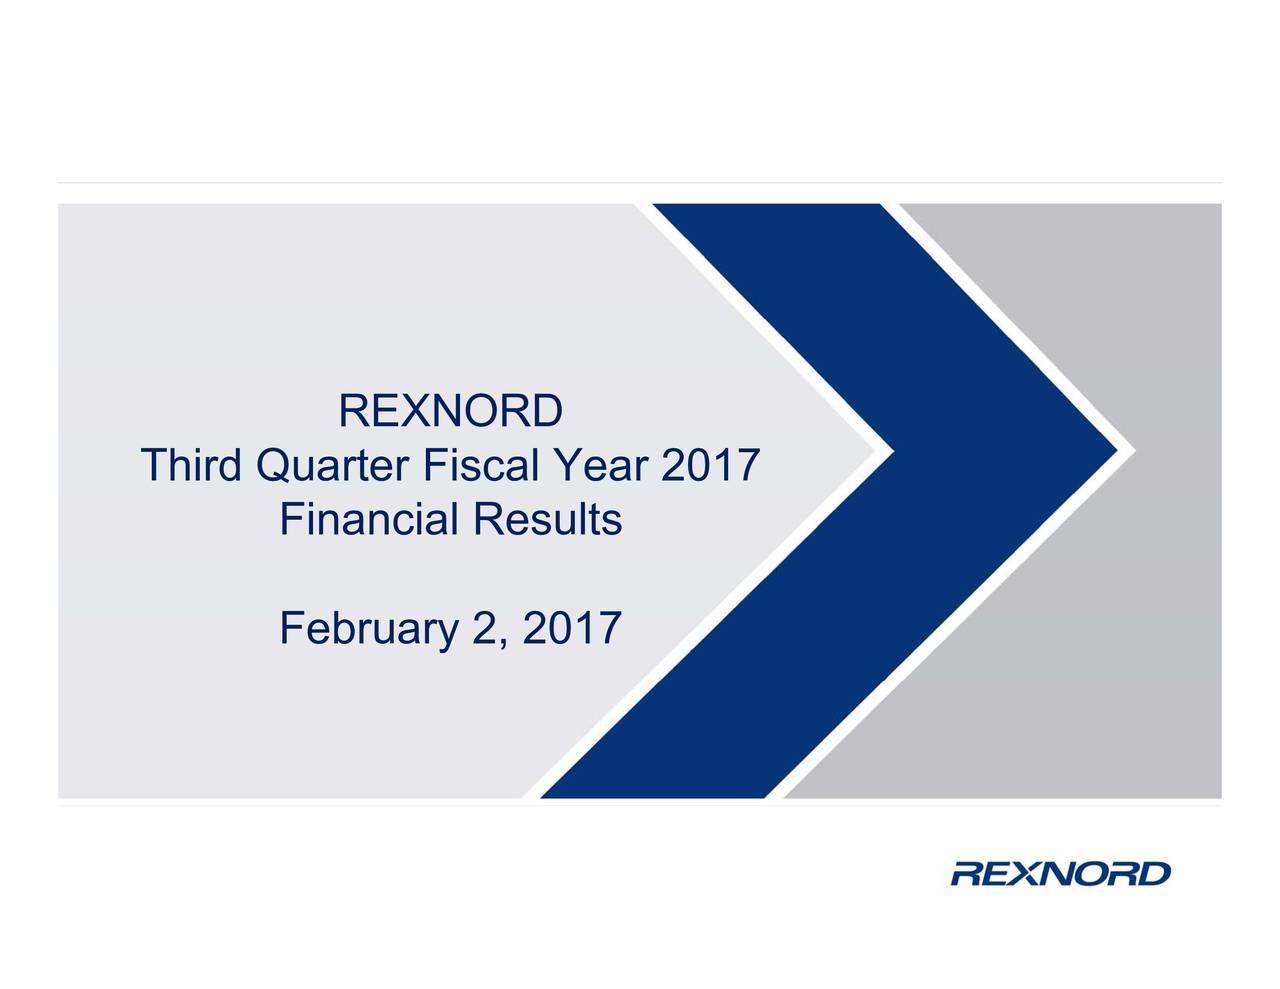 Financial Results017 Third Quarter Fiscal Year 2017